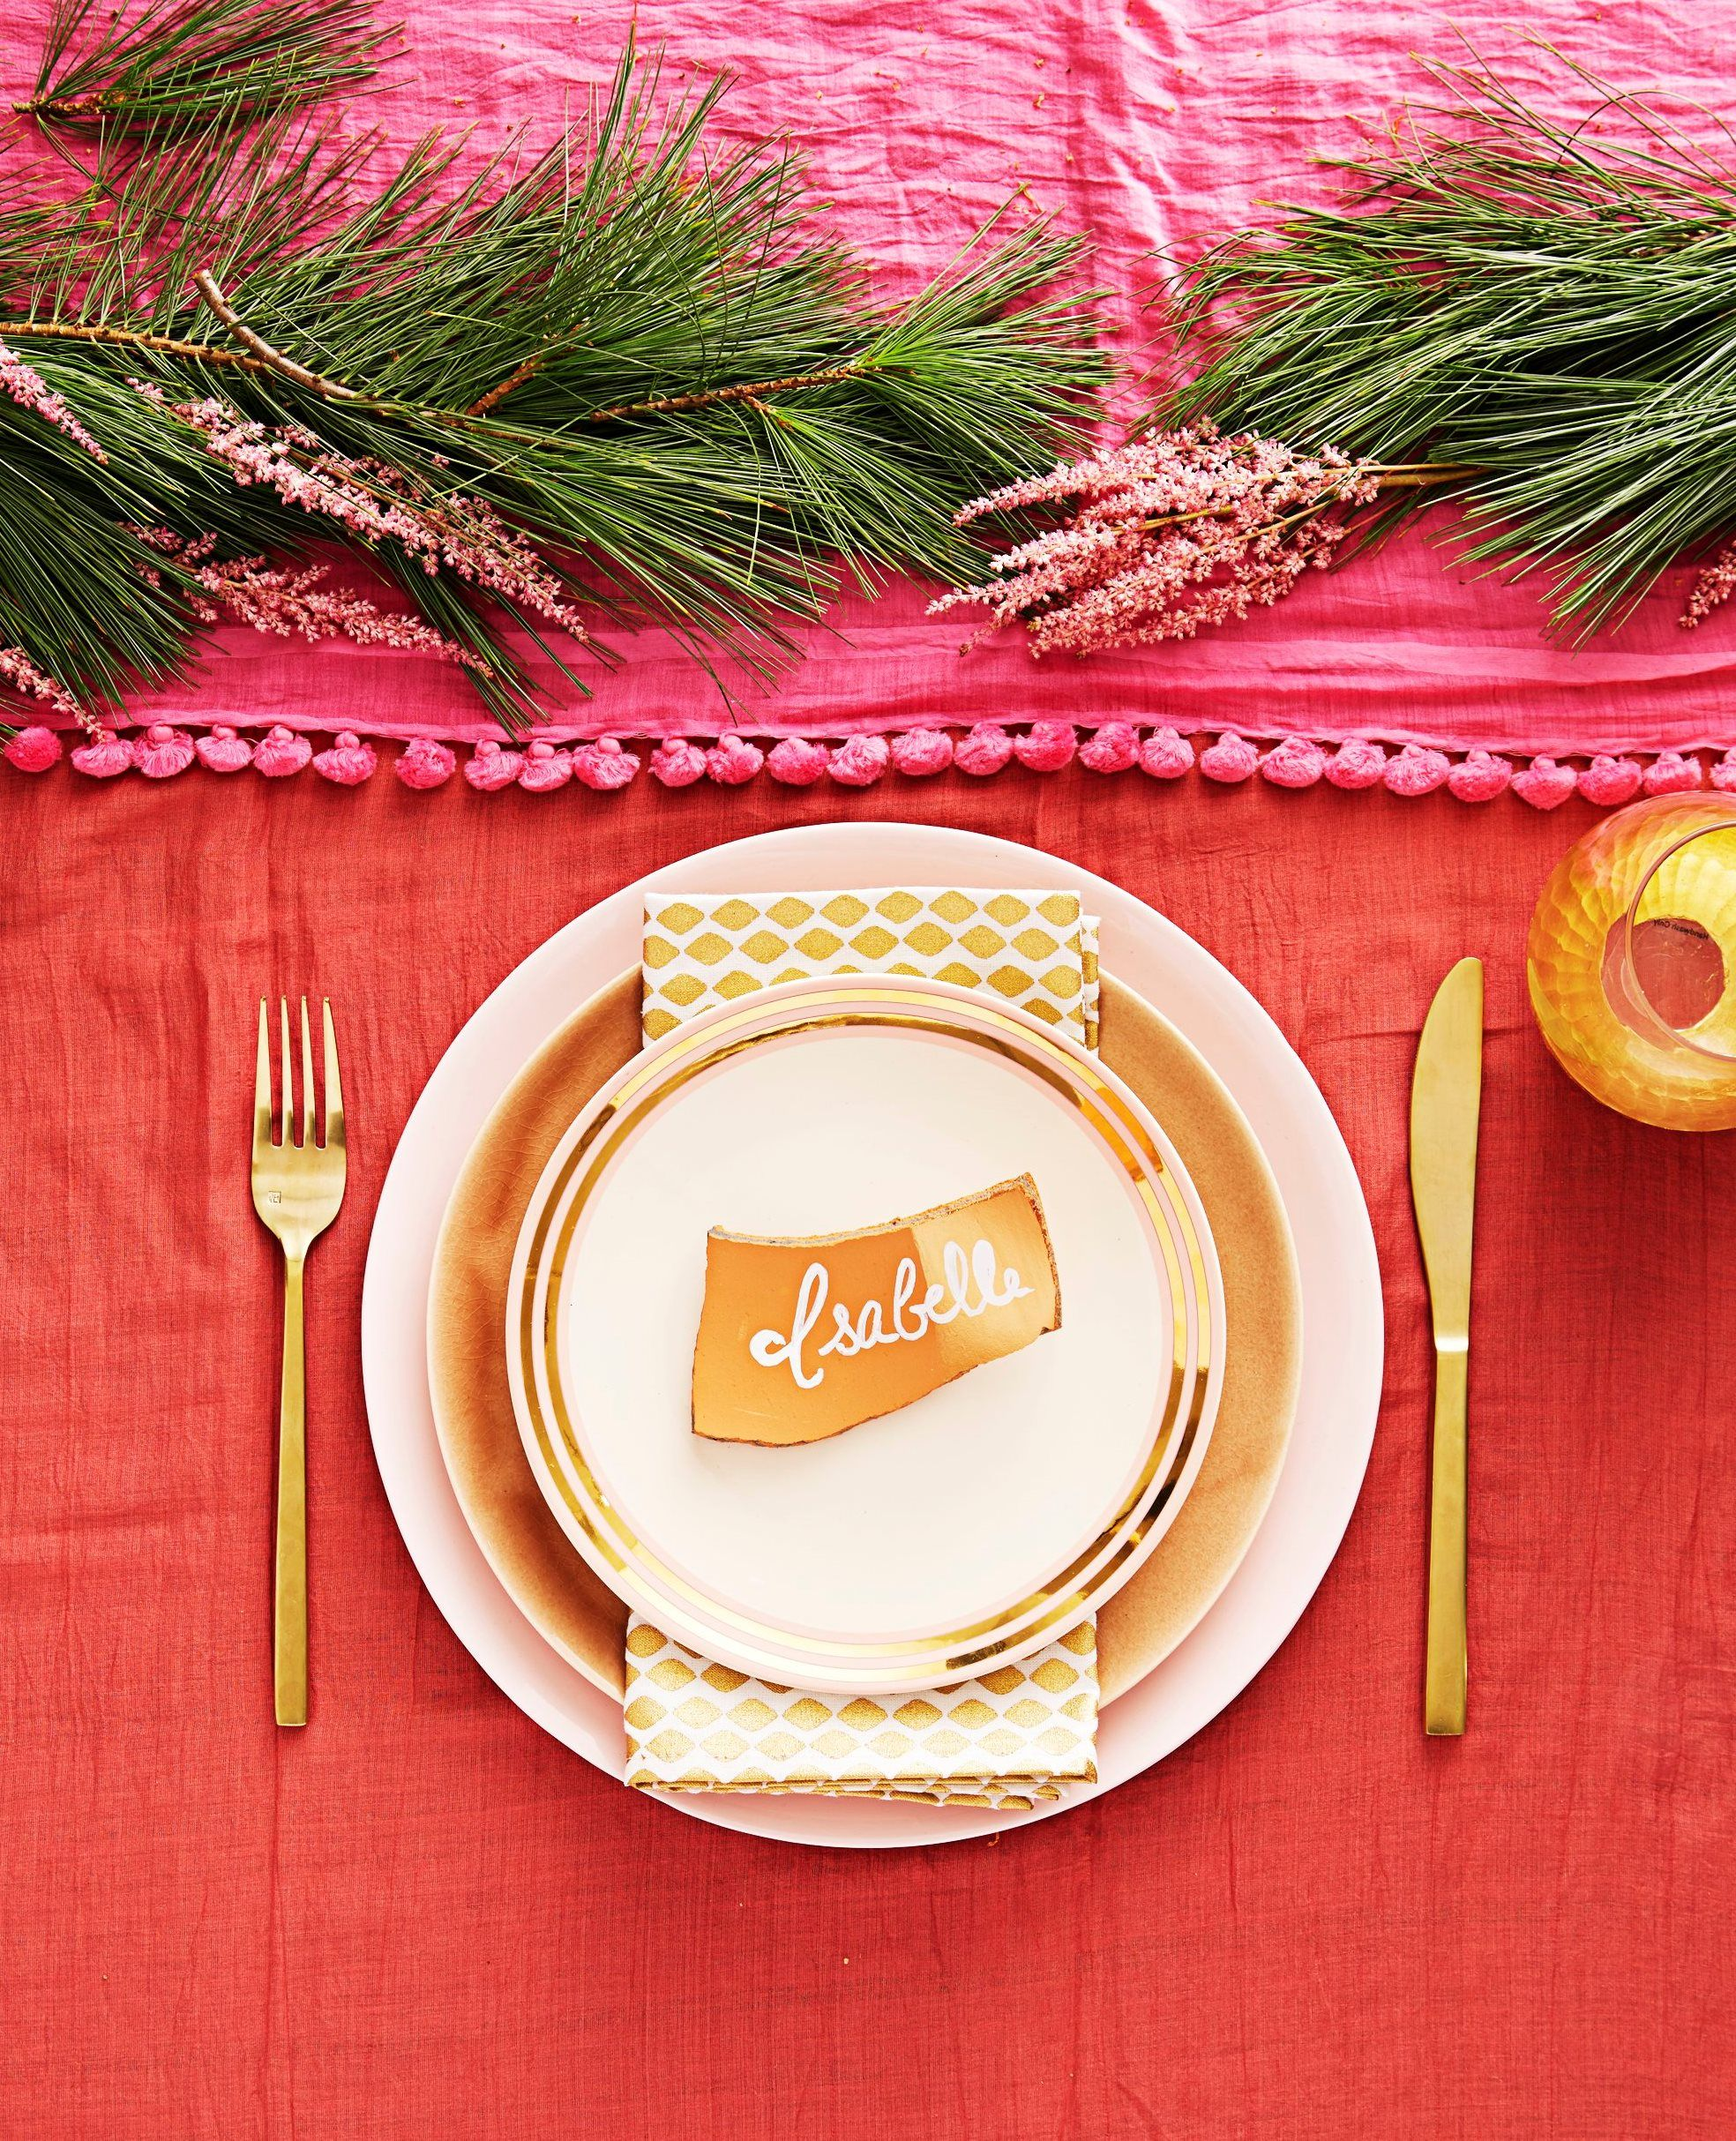 Tisch Dekorieren Advent 9 Stunning And Stylish Holiday Tablescapes